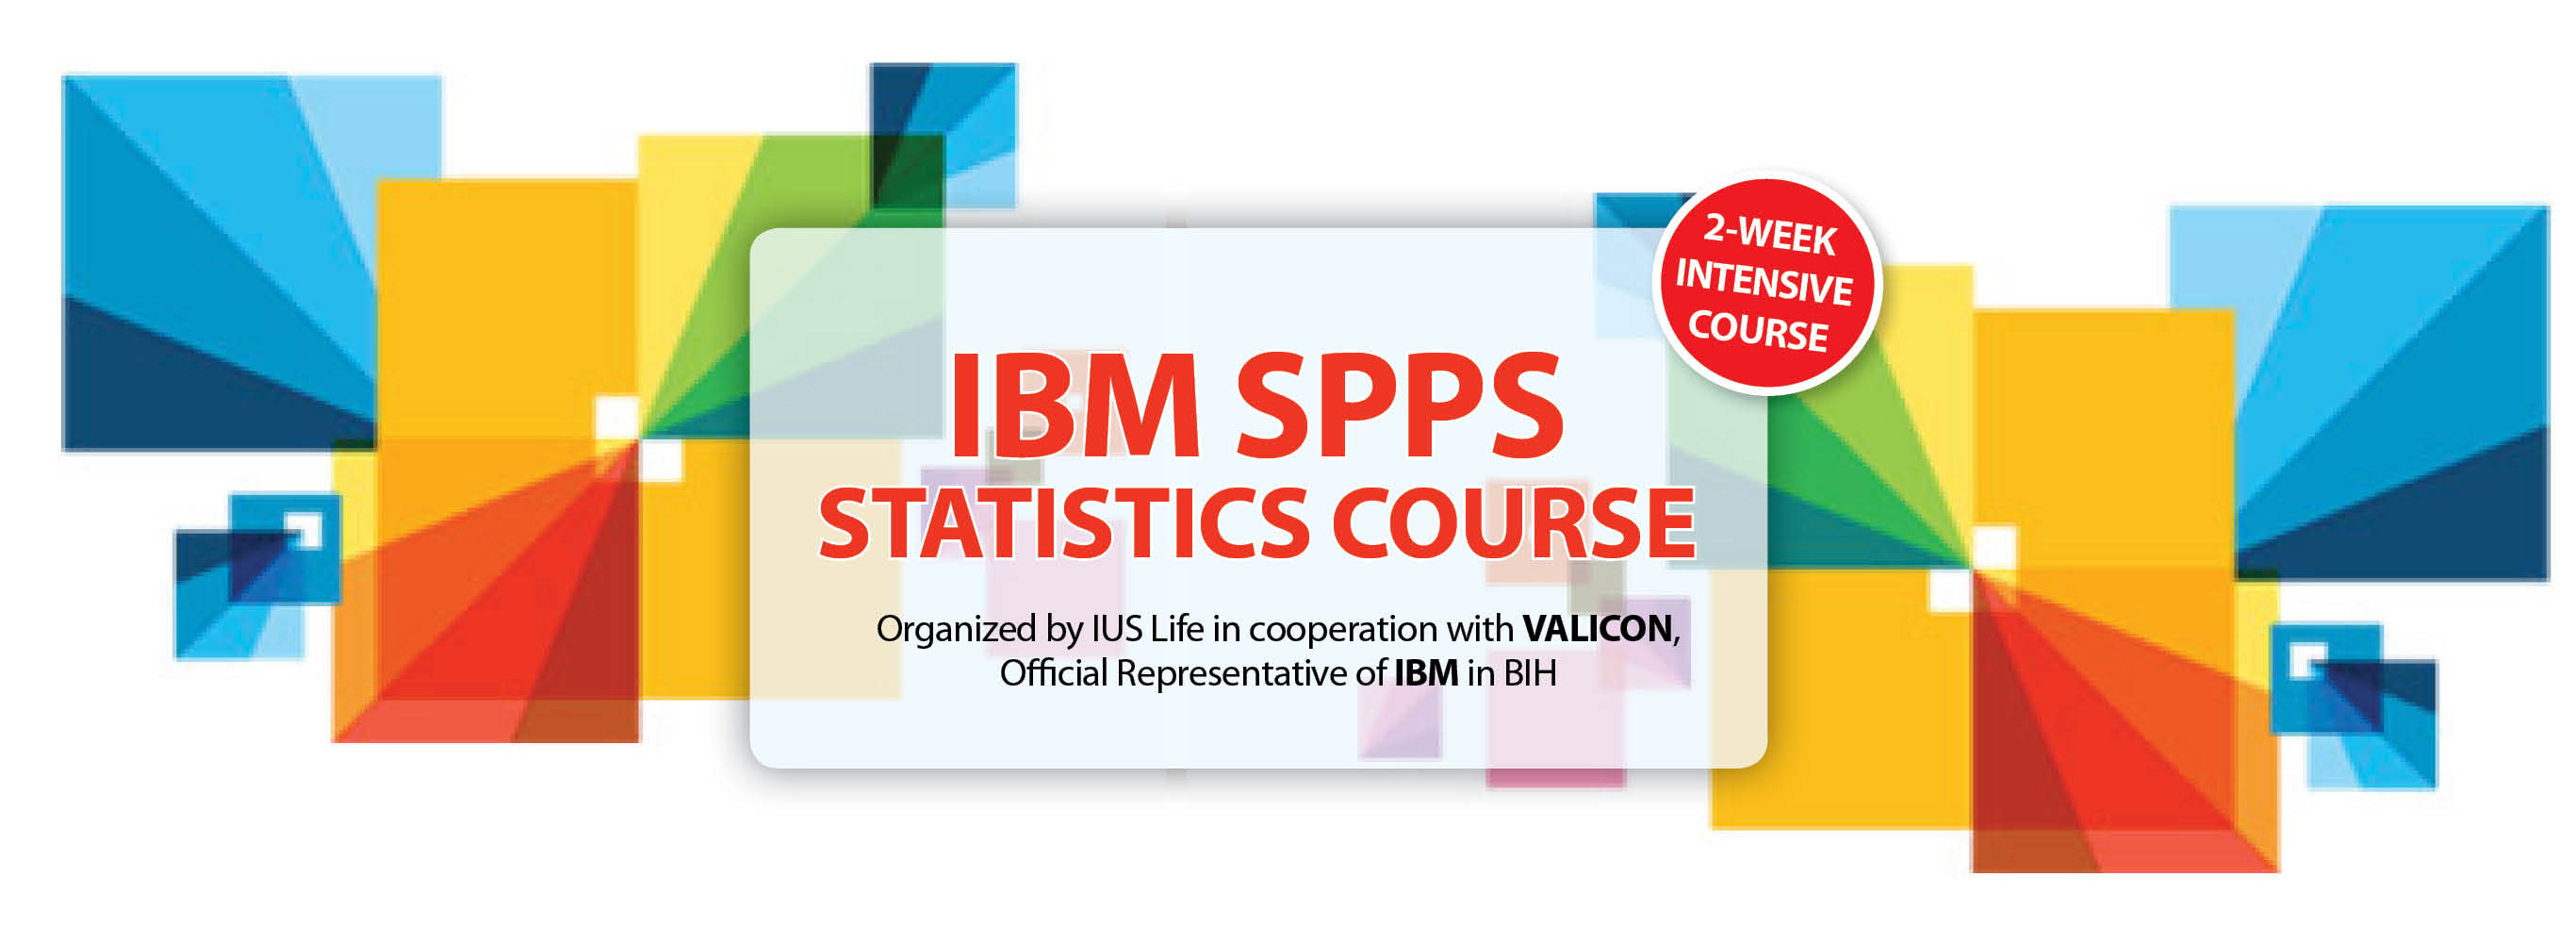 Technology Management Image: IBM SPSS Statistics Course